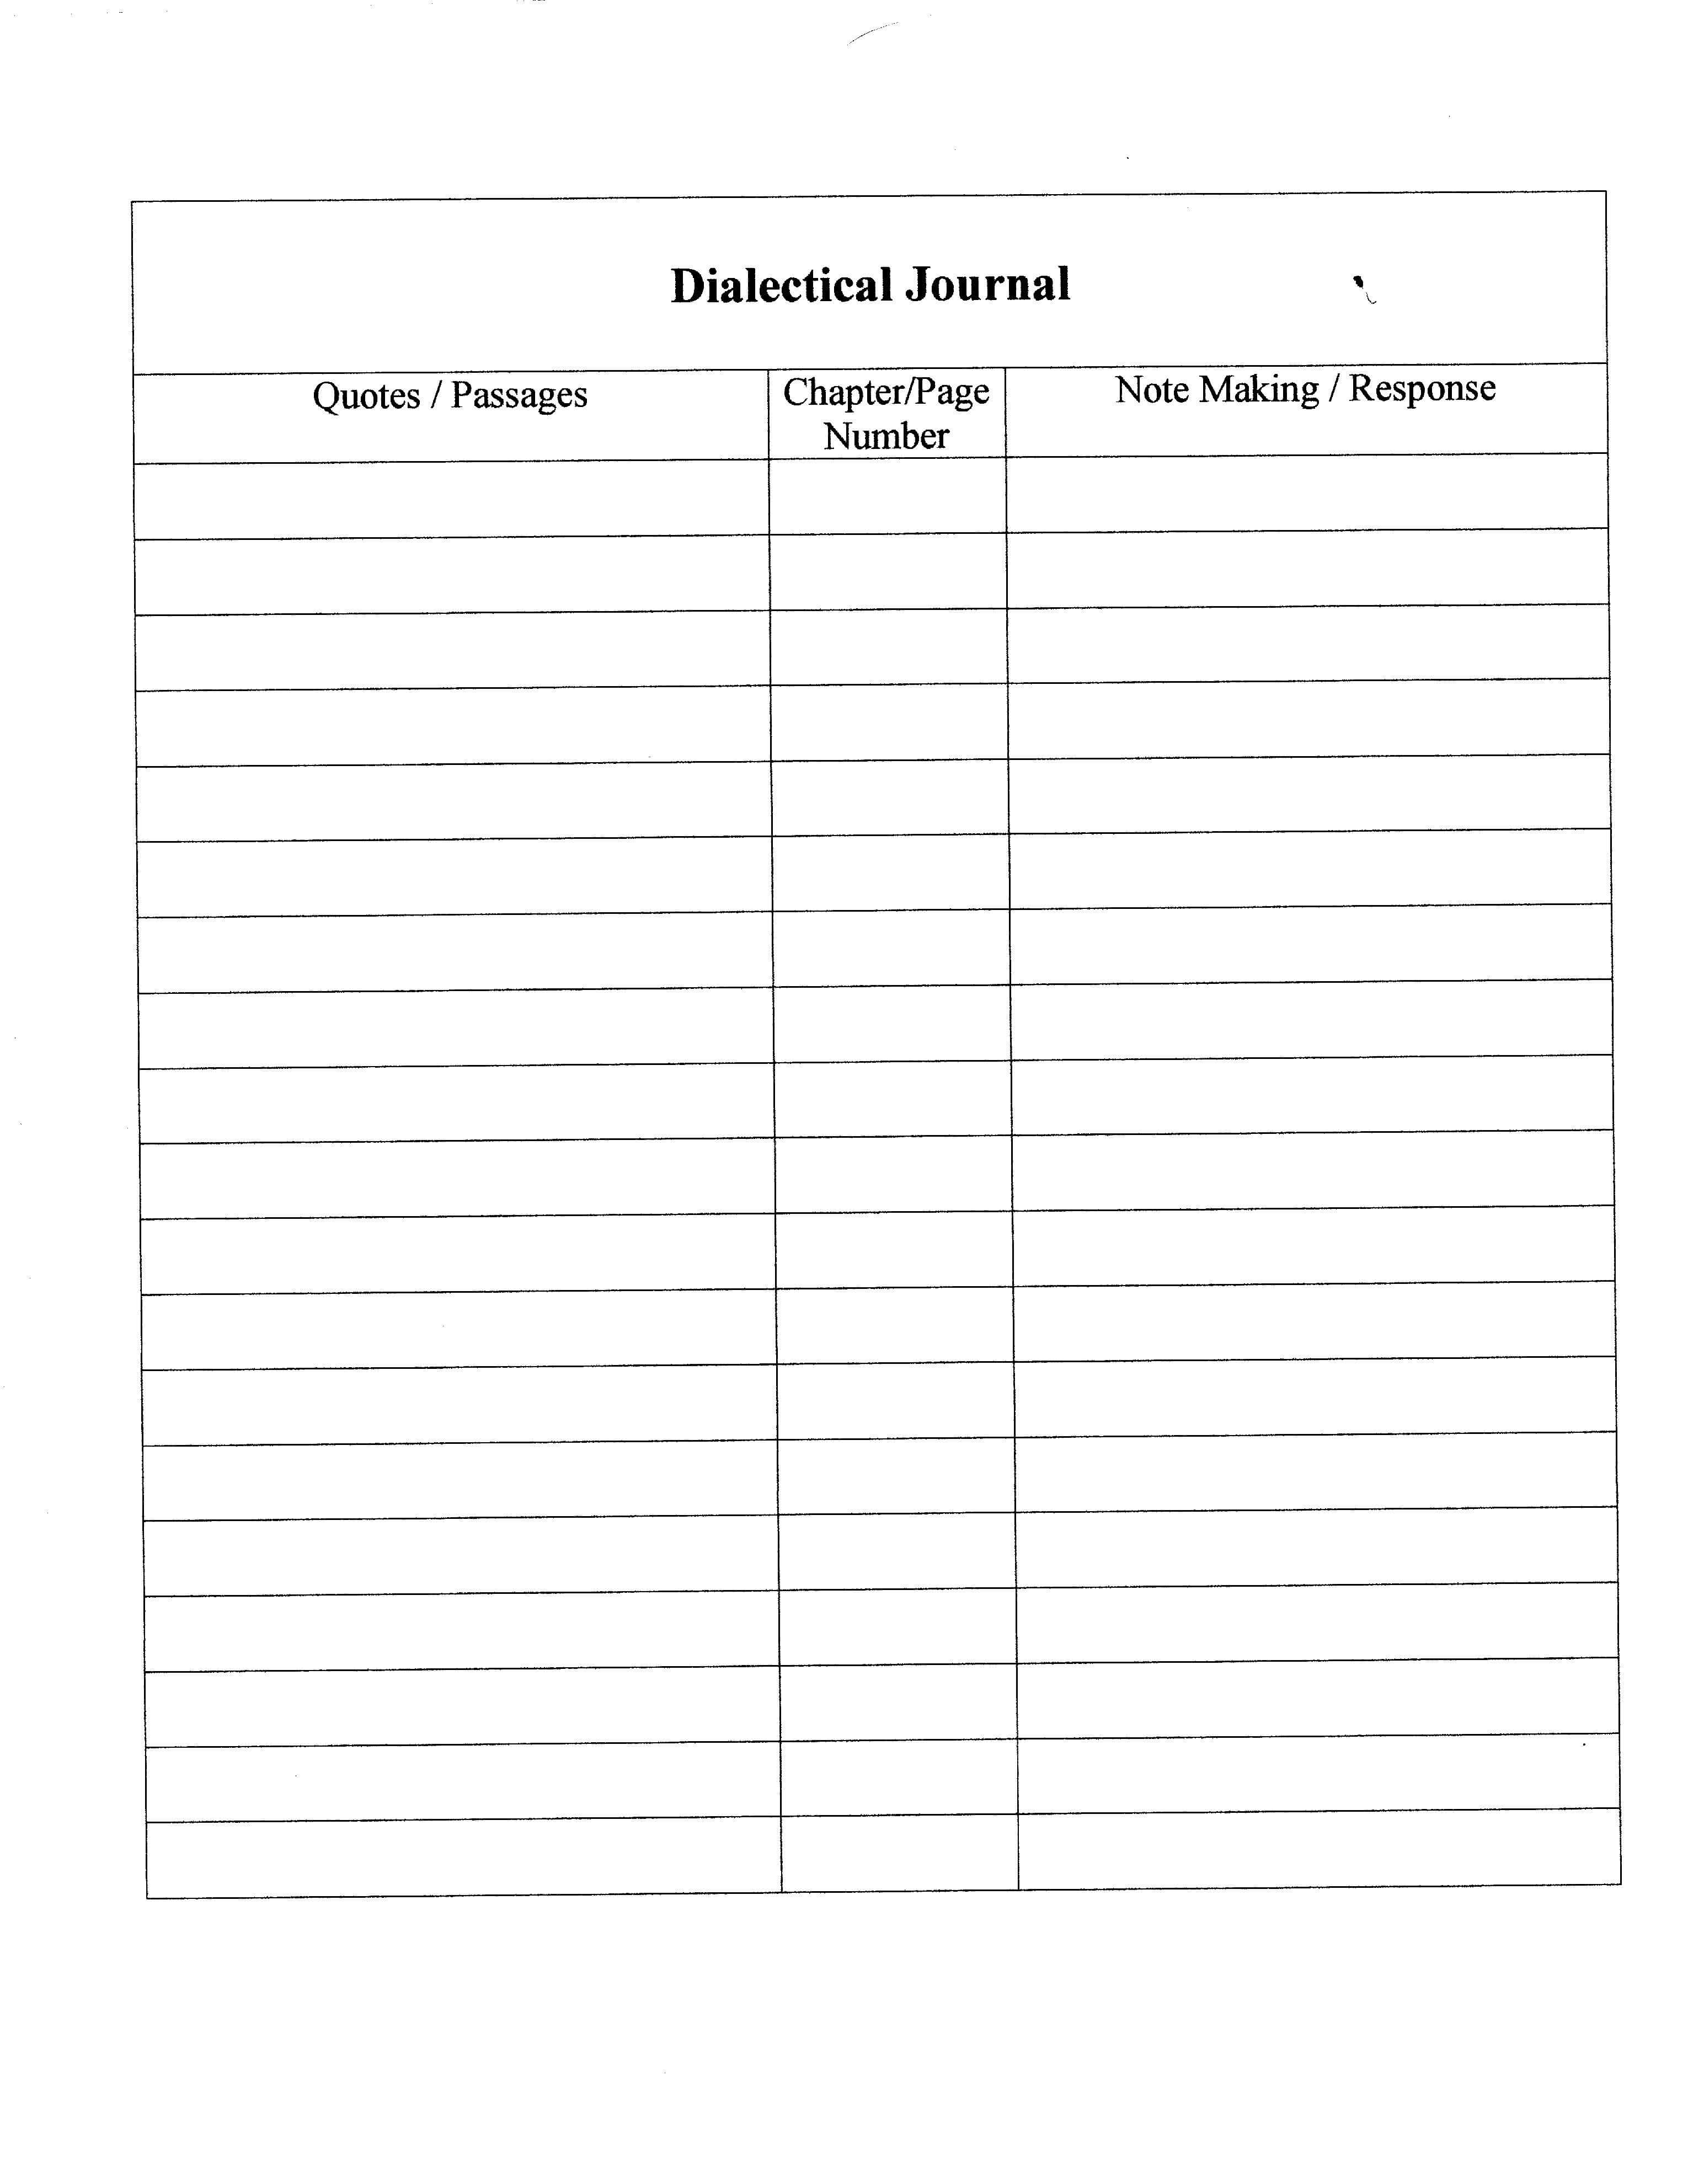 Dialectical Journals And Reading | Reading Workshop, Writing throughout Double Entry Journal Template For Word